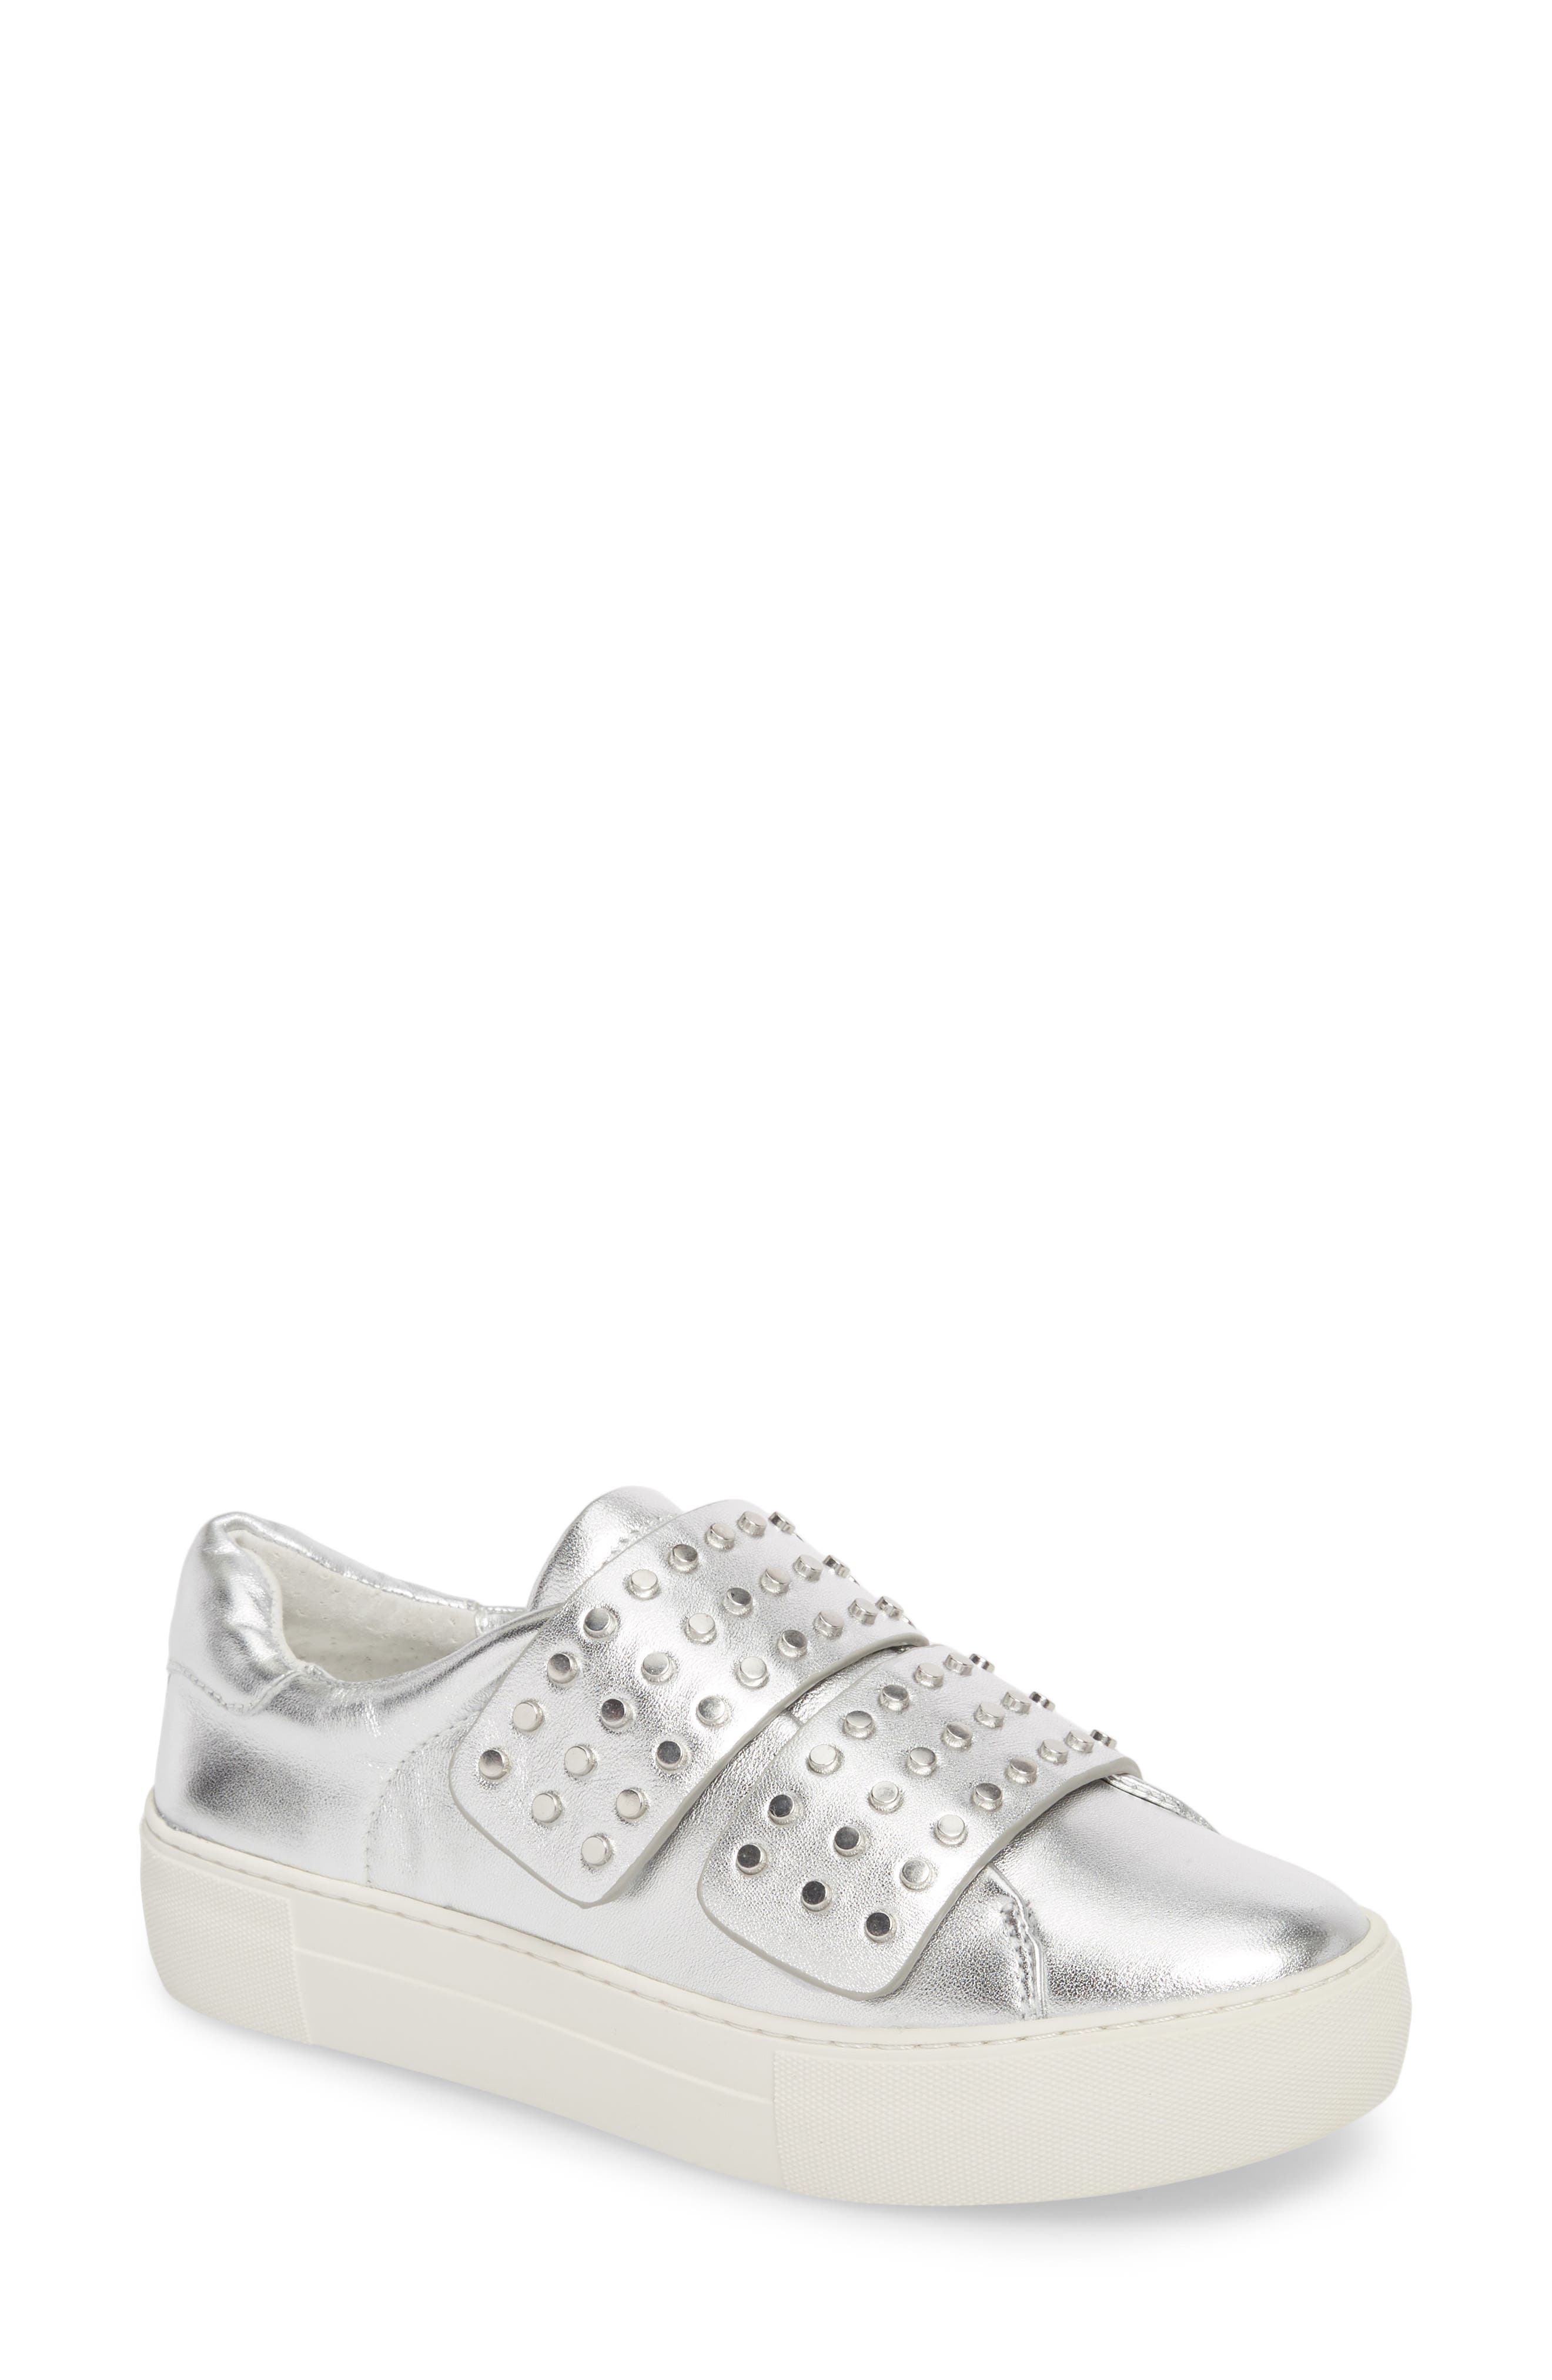 Accent Slip-On Sneaker,                         Main,                         color, SILVER METALLIC LEATHER